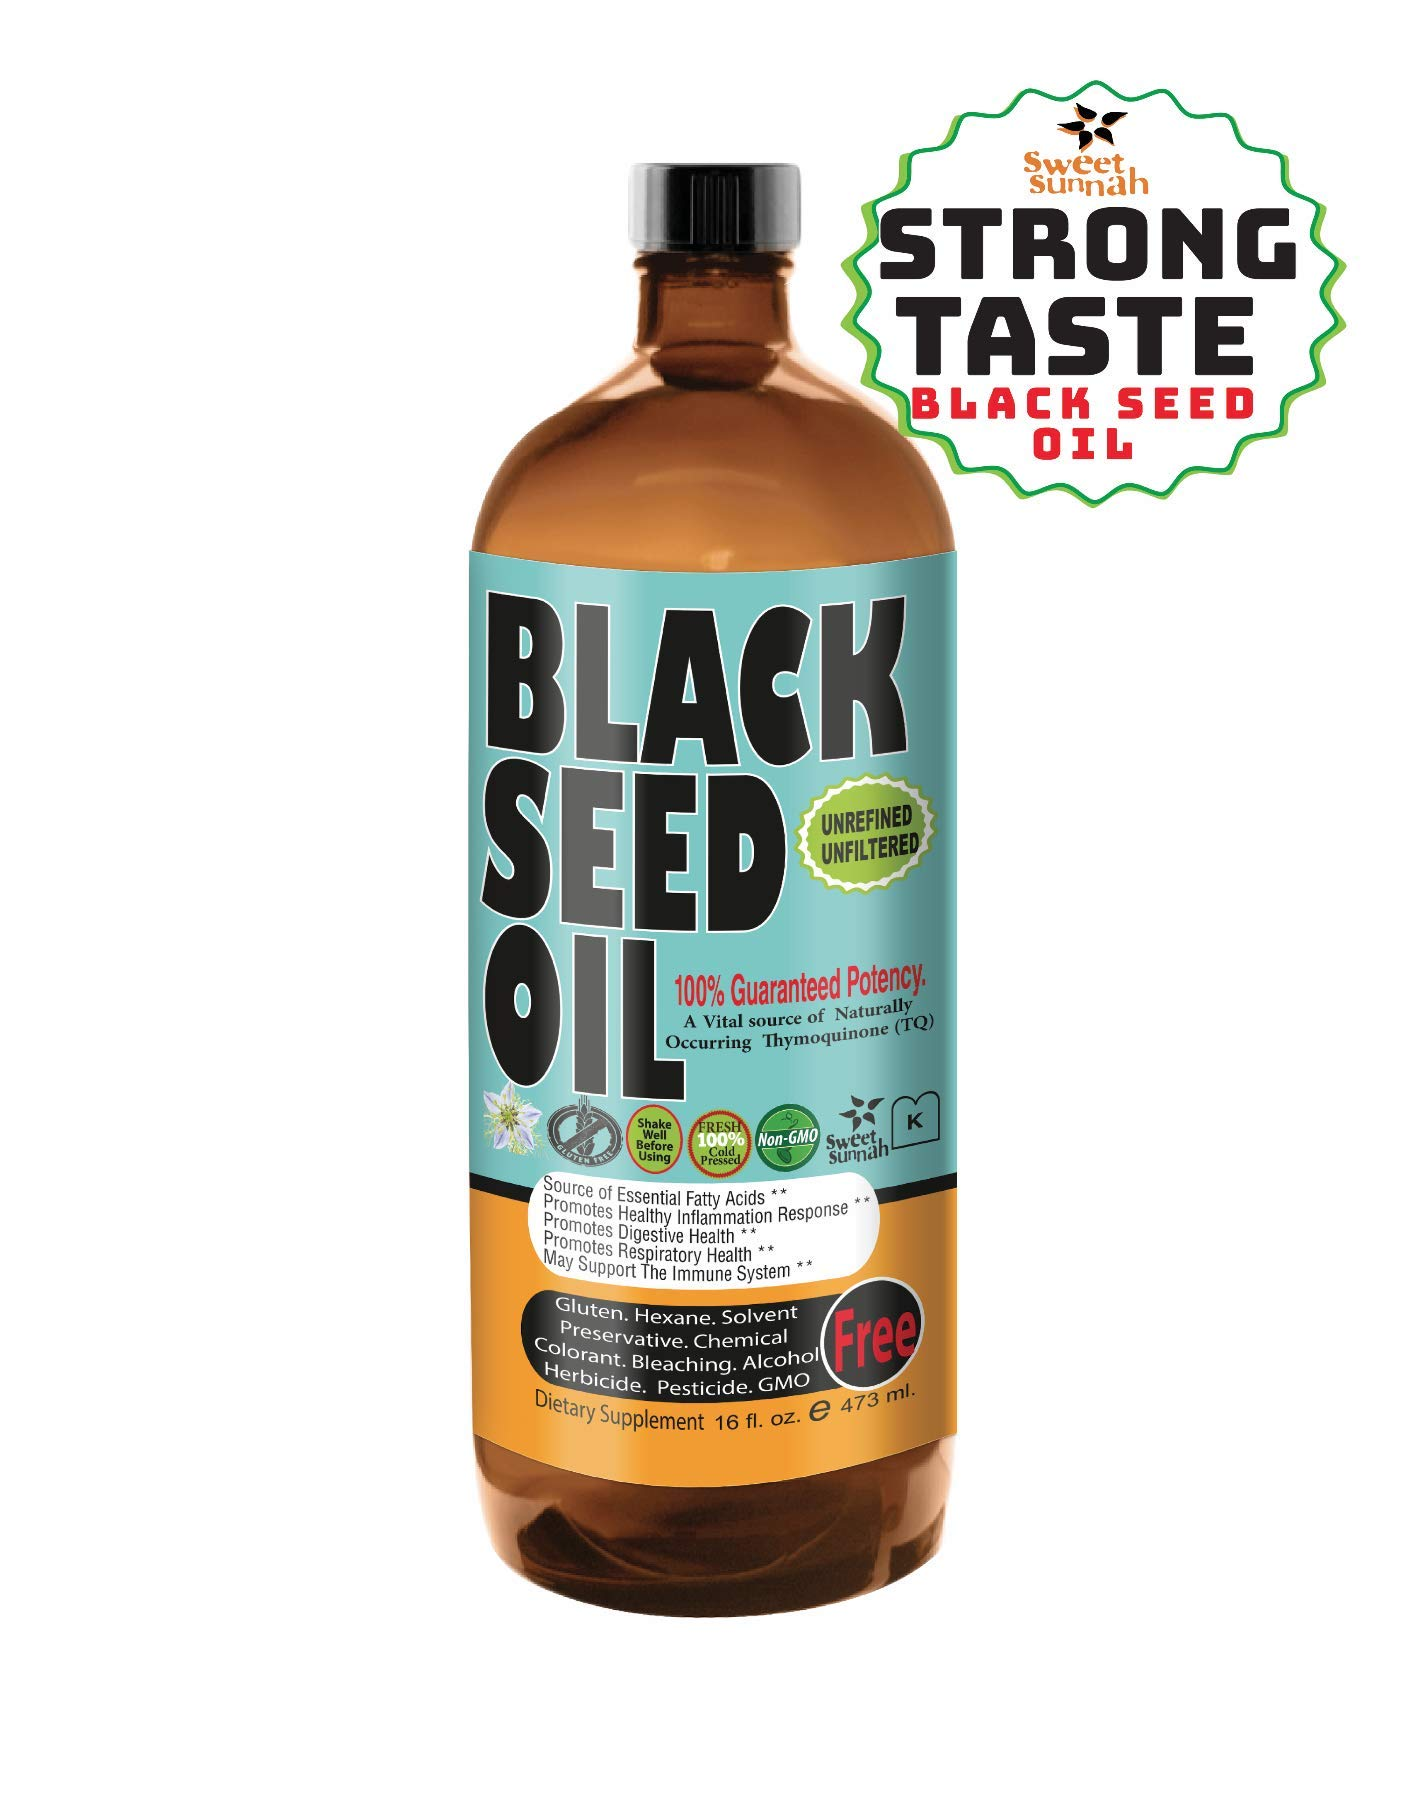 STRONG TASTE Premium Black Seed Oil Liquid - 2.20%+ Thymoquinone Cold pressed Source of Omega 3 6 9 Black Cumin Seed Oil from 100% Genuine Nigella Sativa - 16 oz Glass Bottle by Sweet Sunnah